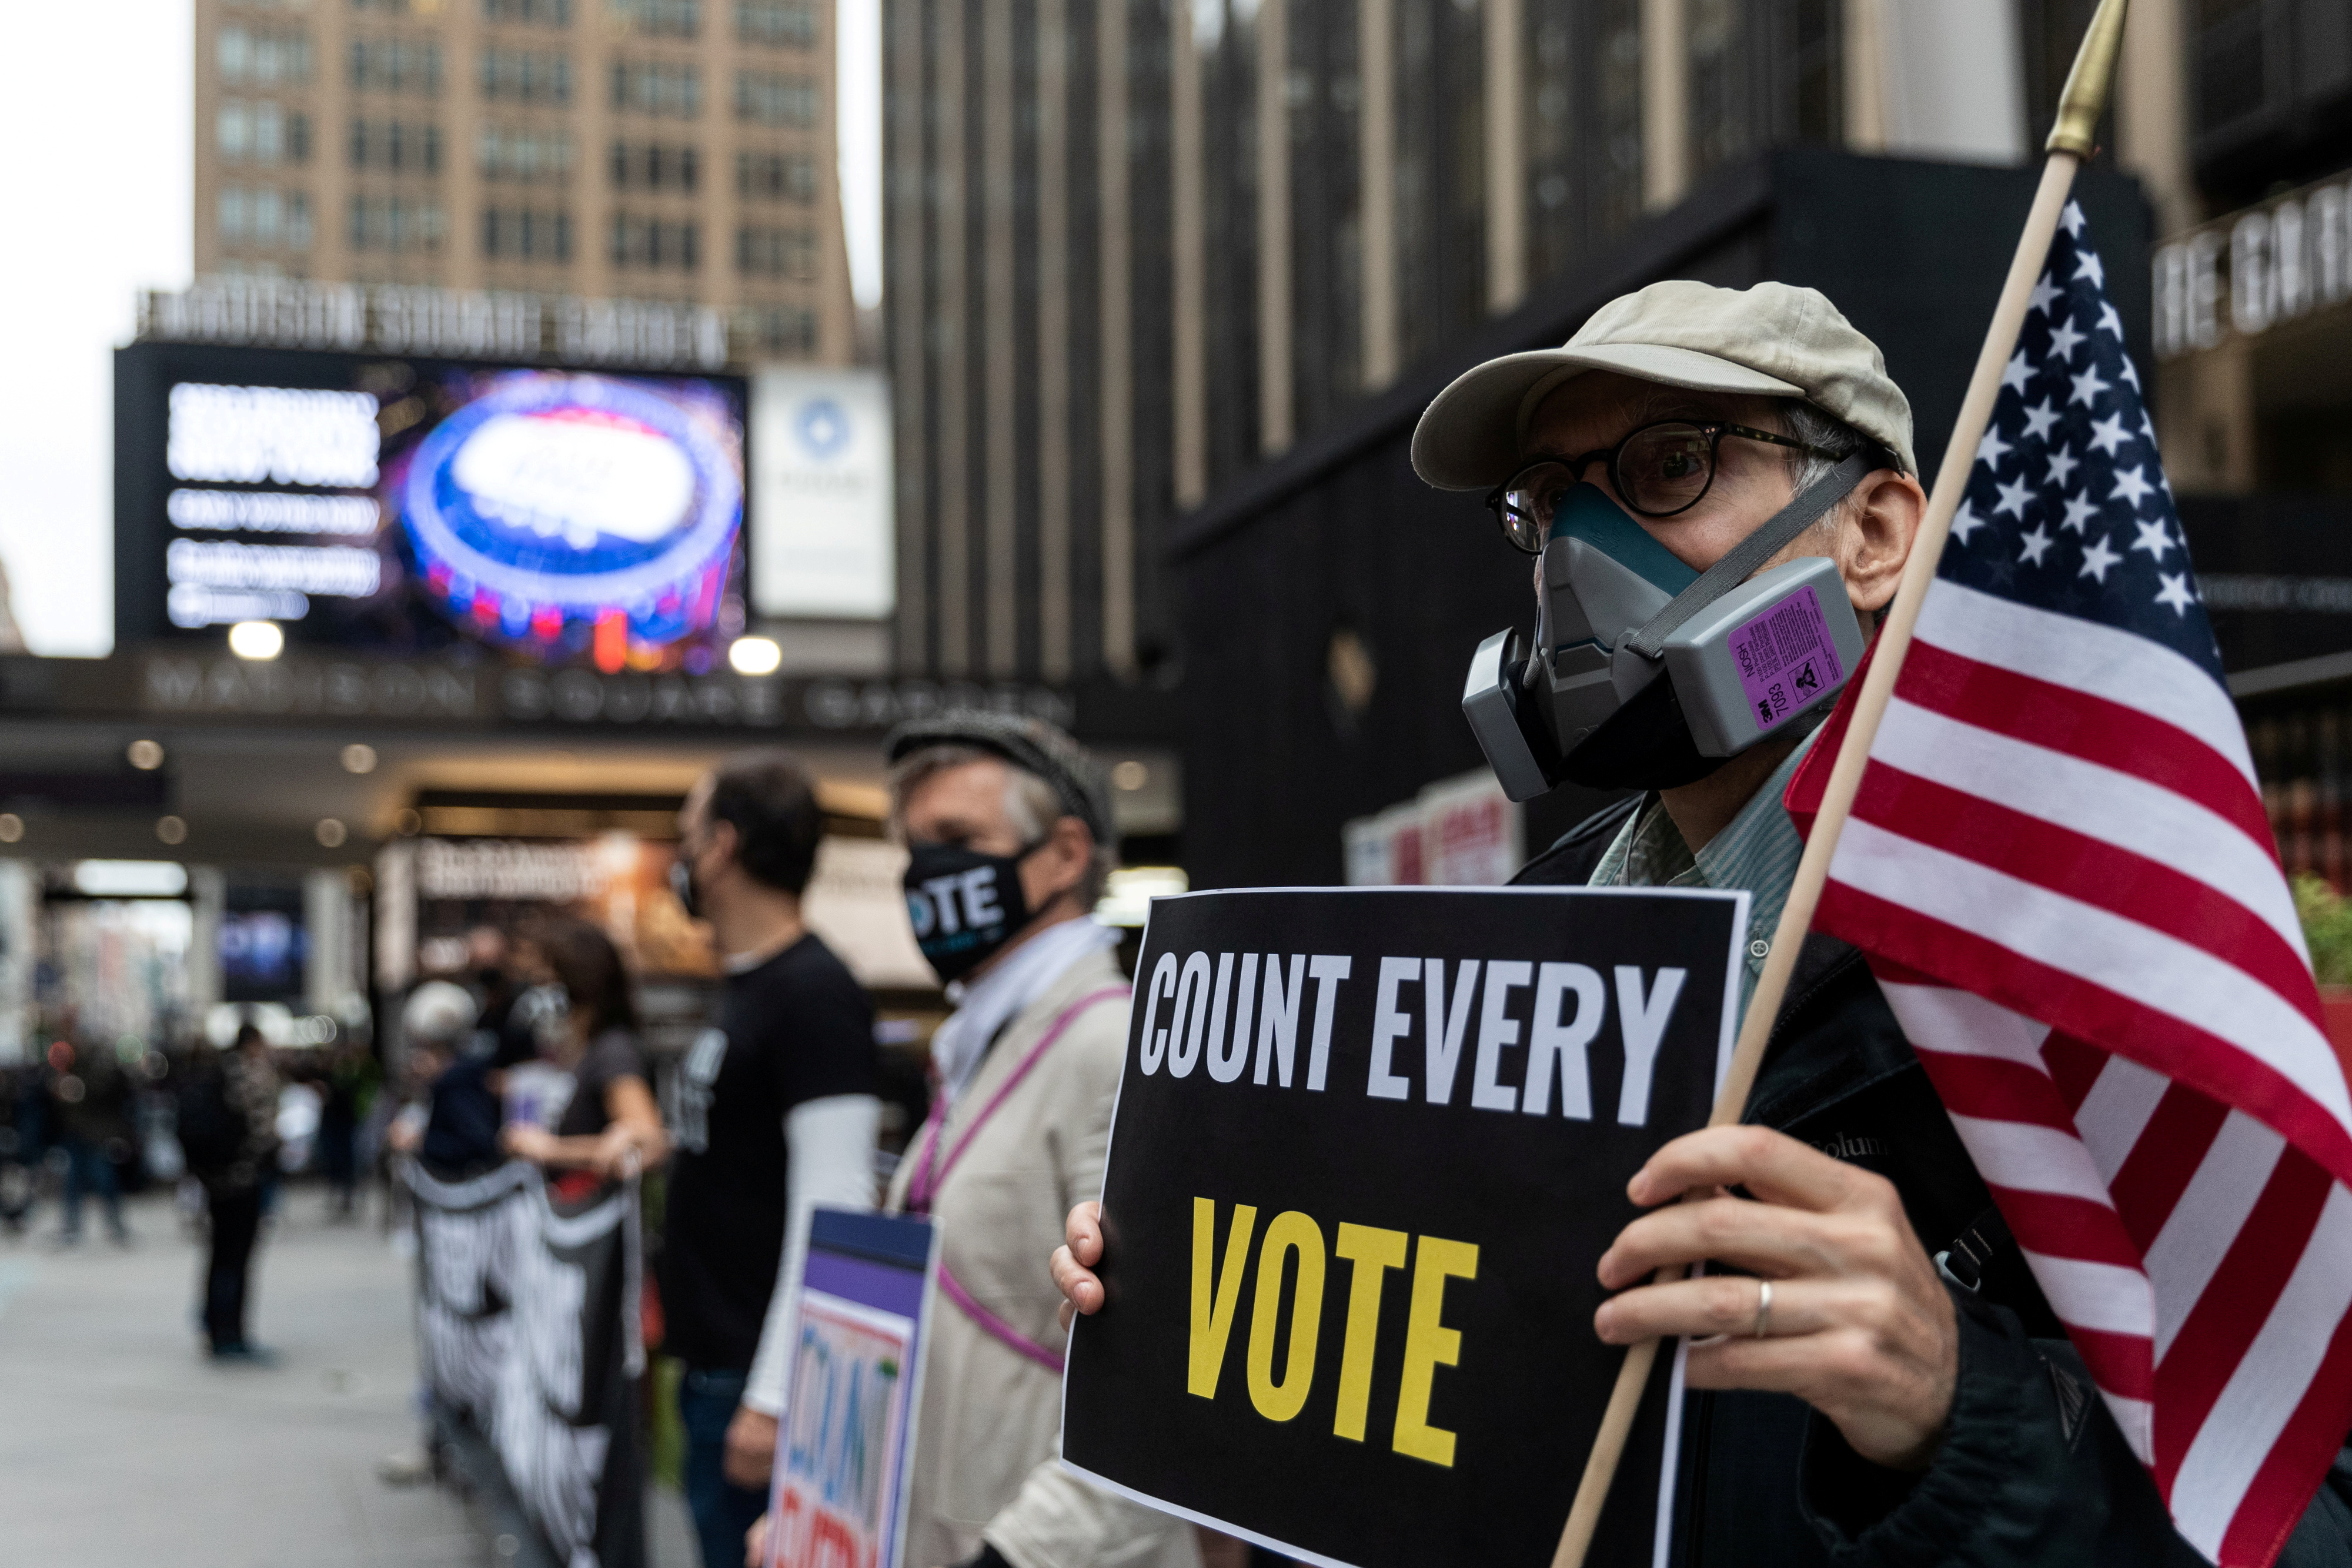 An older man wearing a respirator-style protective mask due to COVID-19 pandemic holds a sign outside Madison Square Garden, which is used as a polling station, on the first day of early voting in Manhattan, New York.